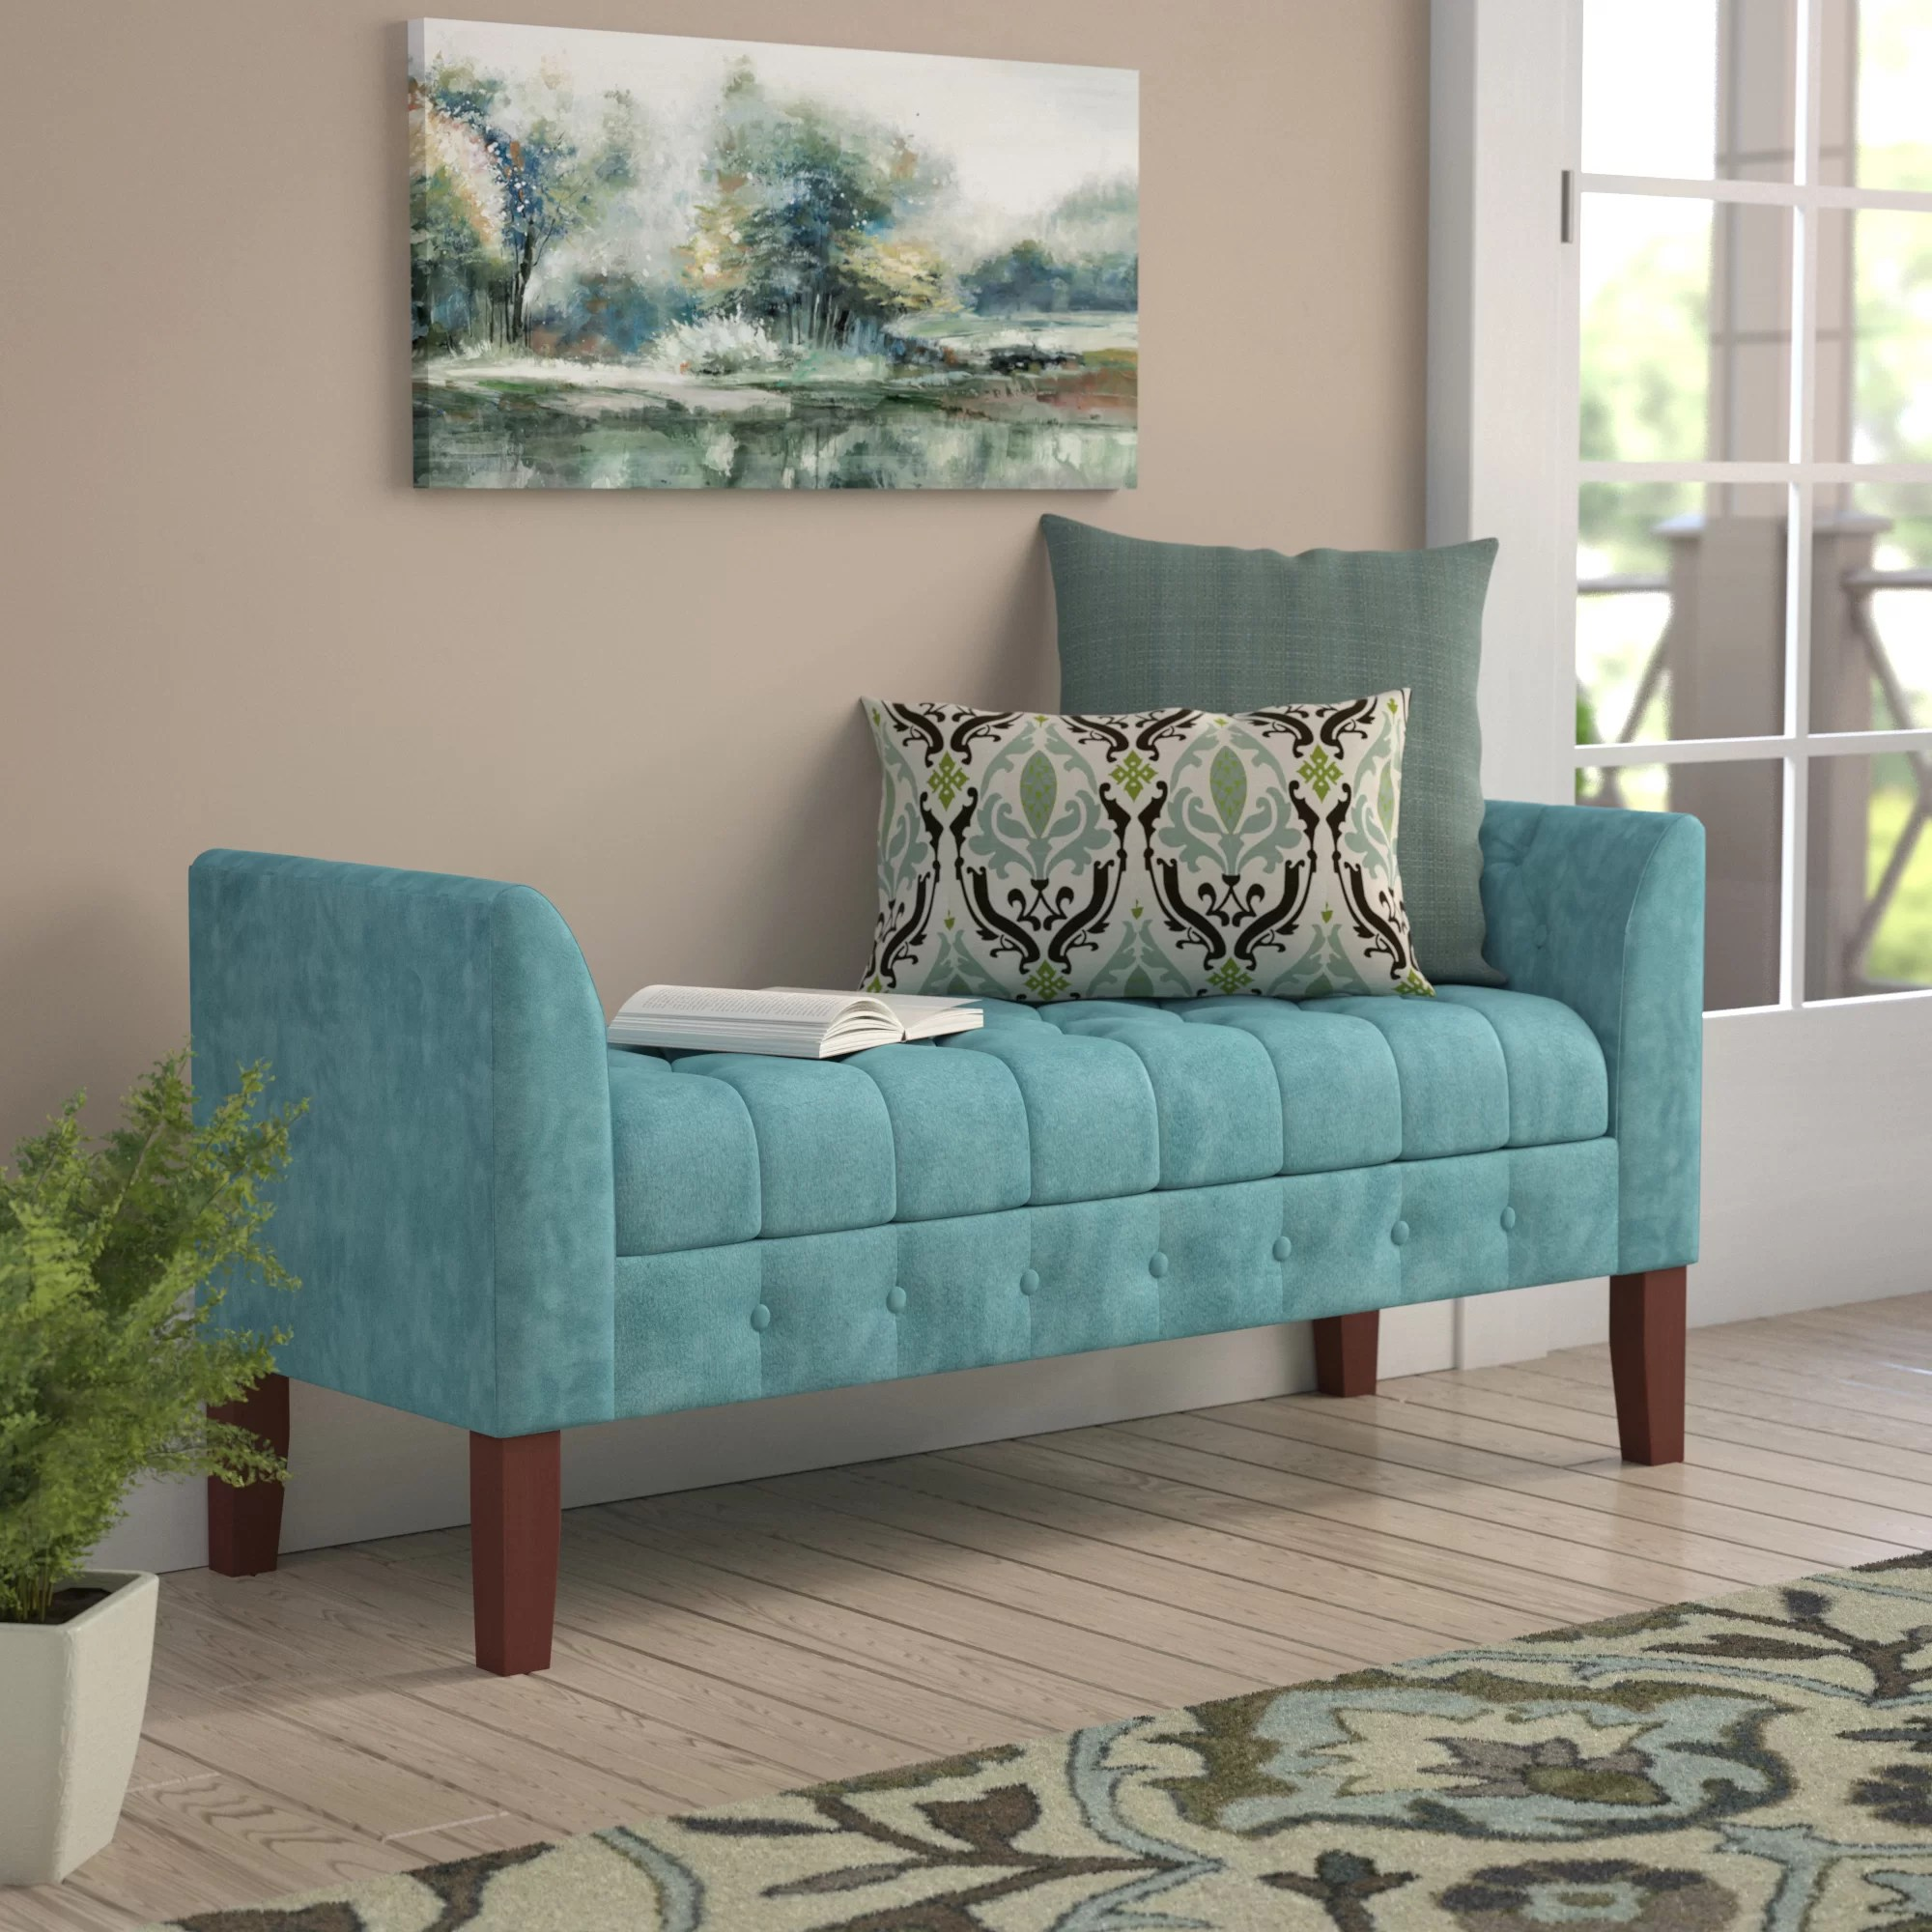 Bed End Storage Hana Upholstered Storage Bench